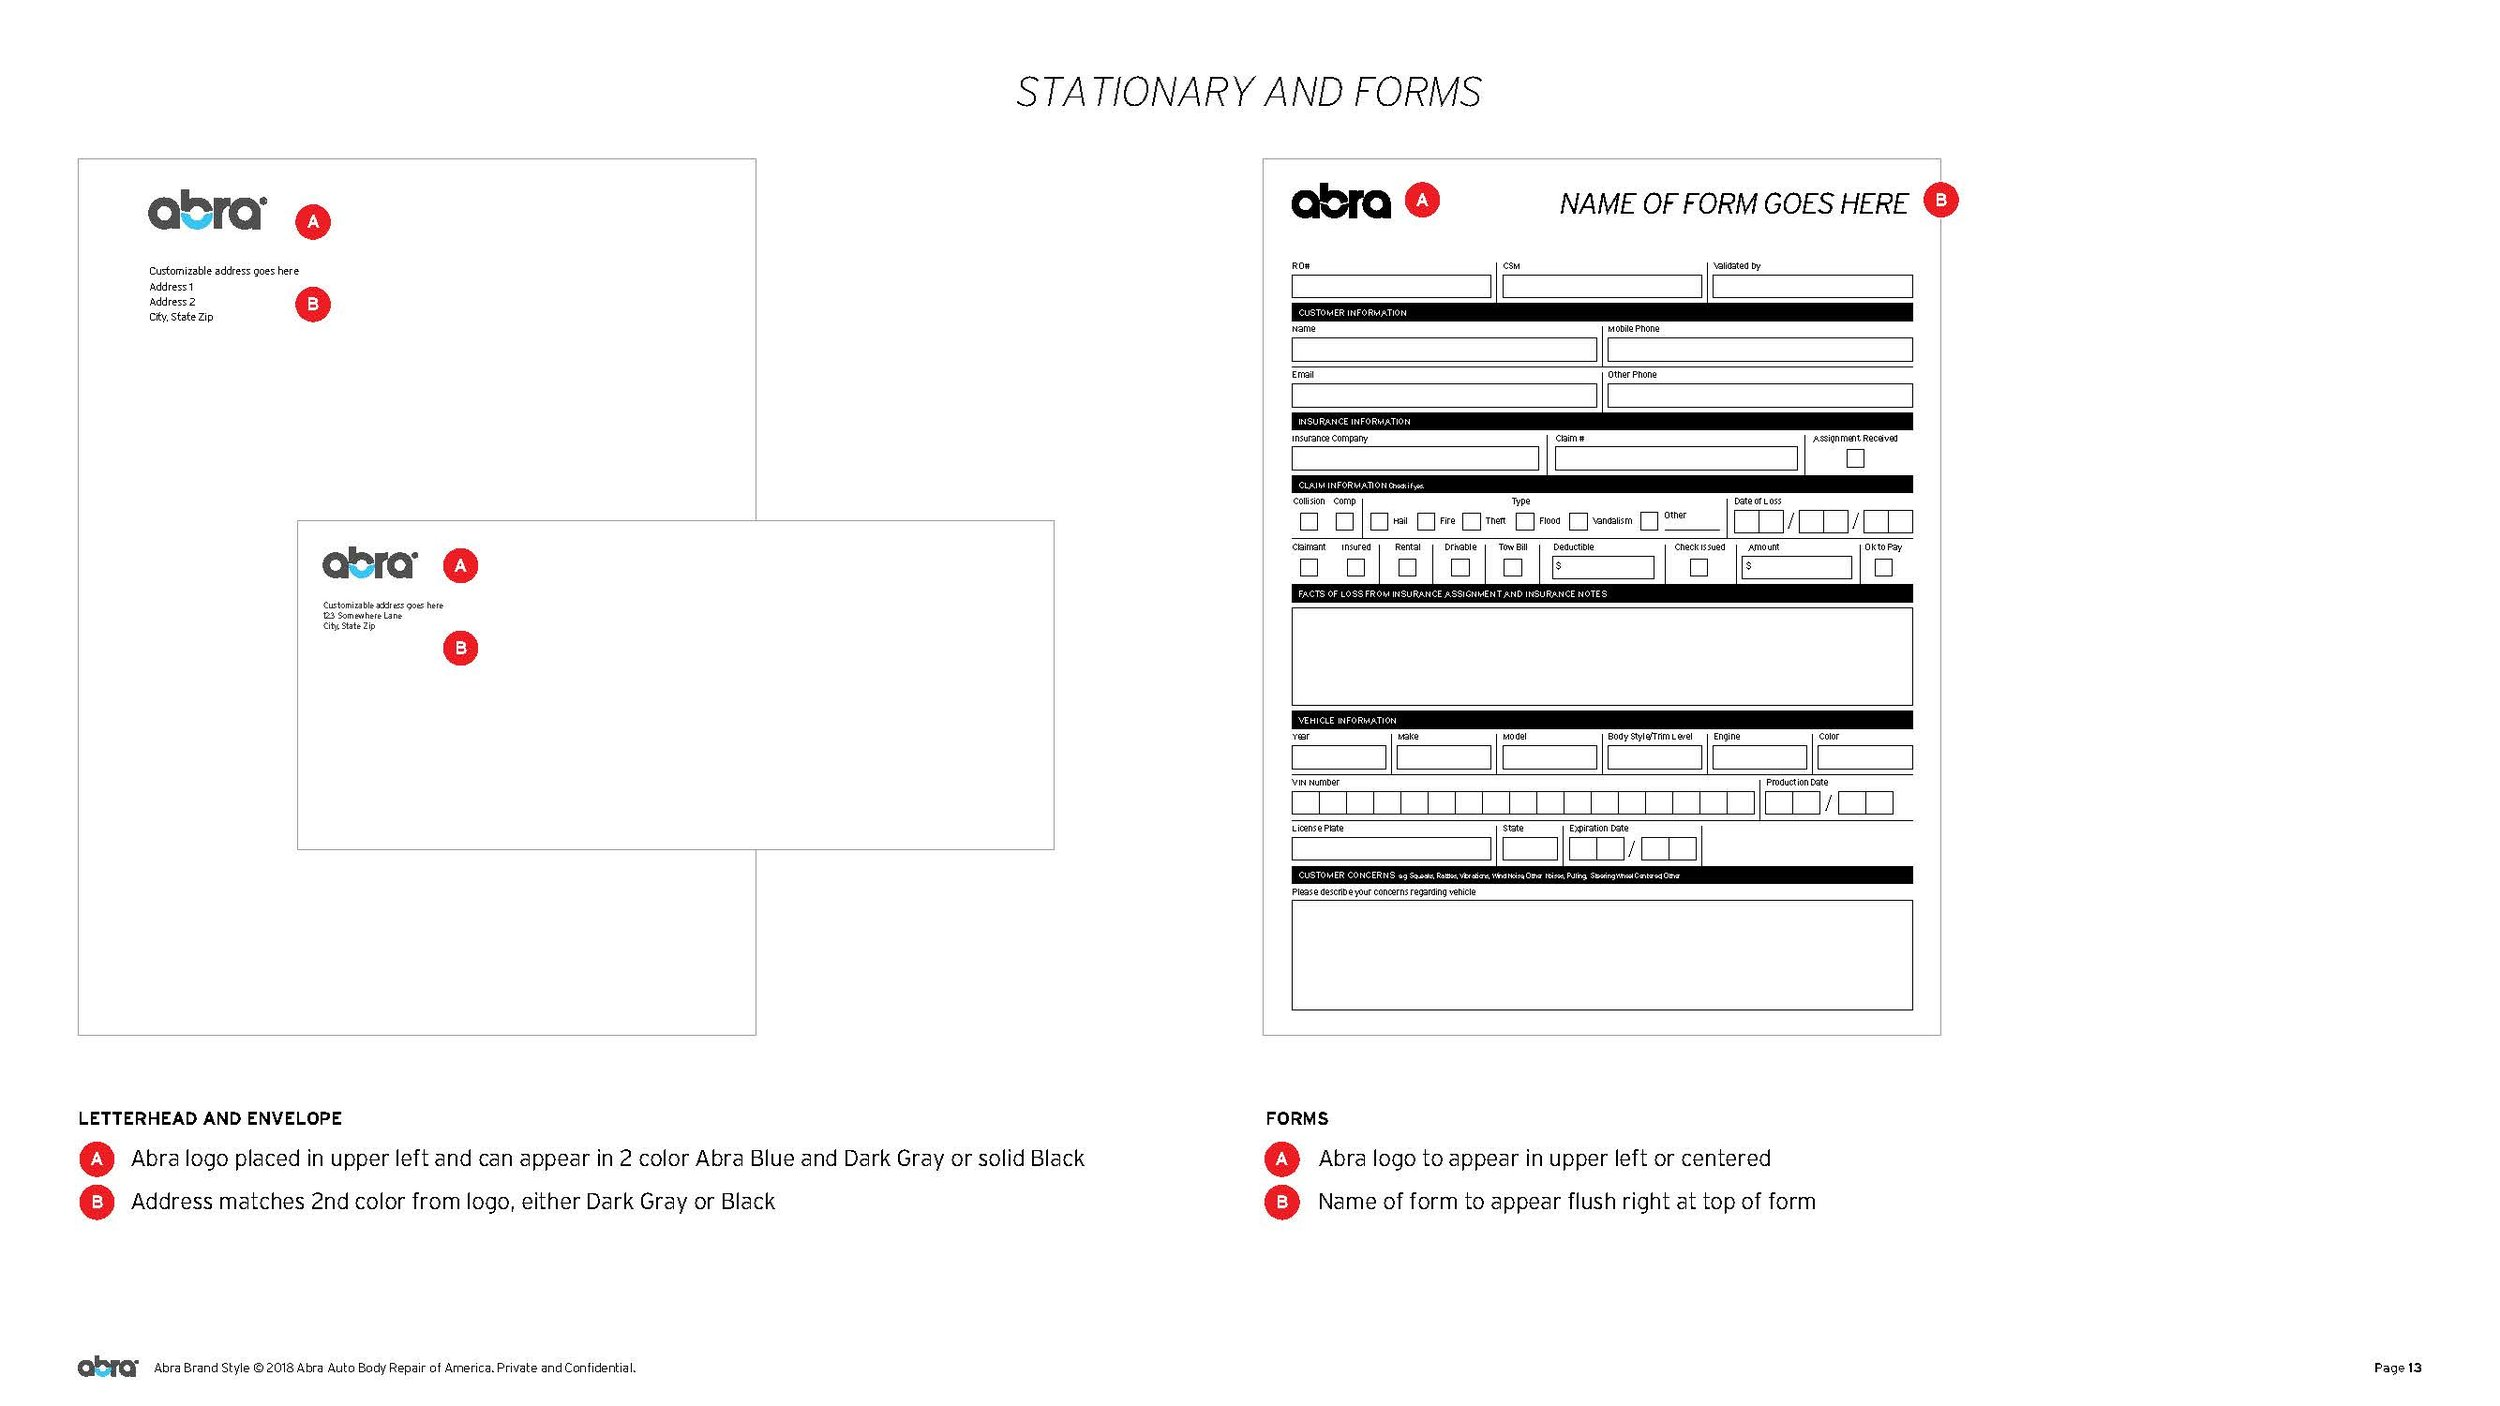 abra brand style guide - R5_Page_13.jpg